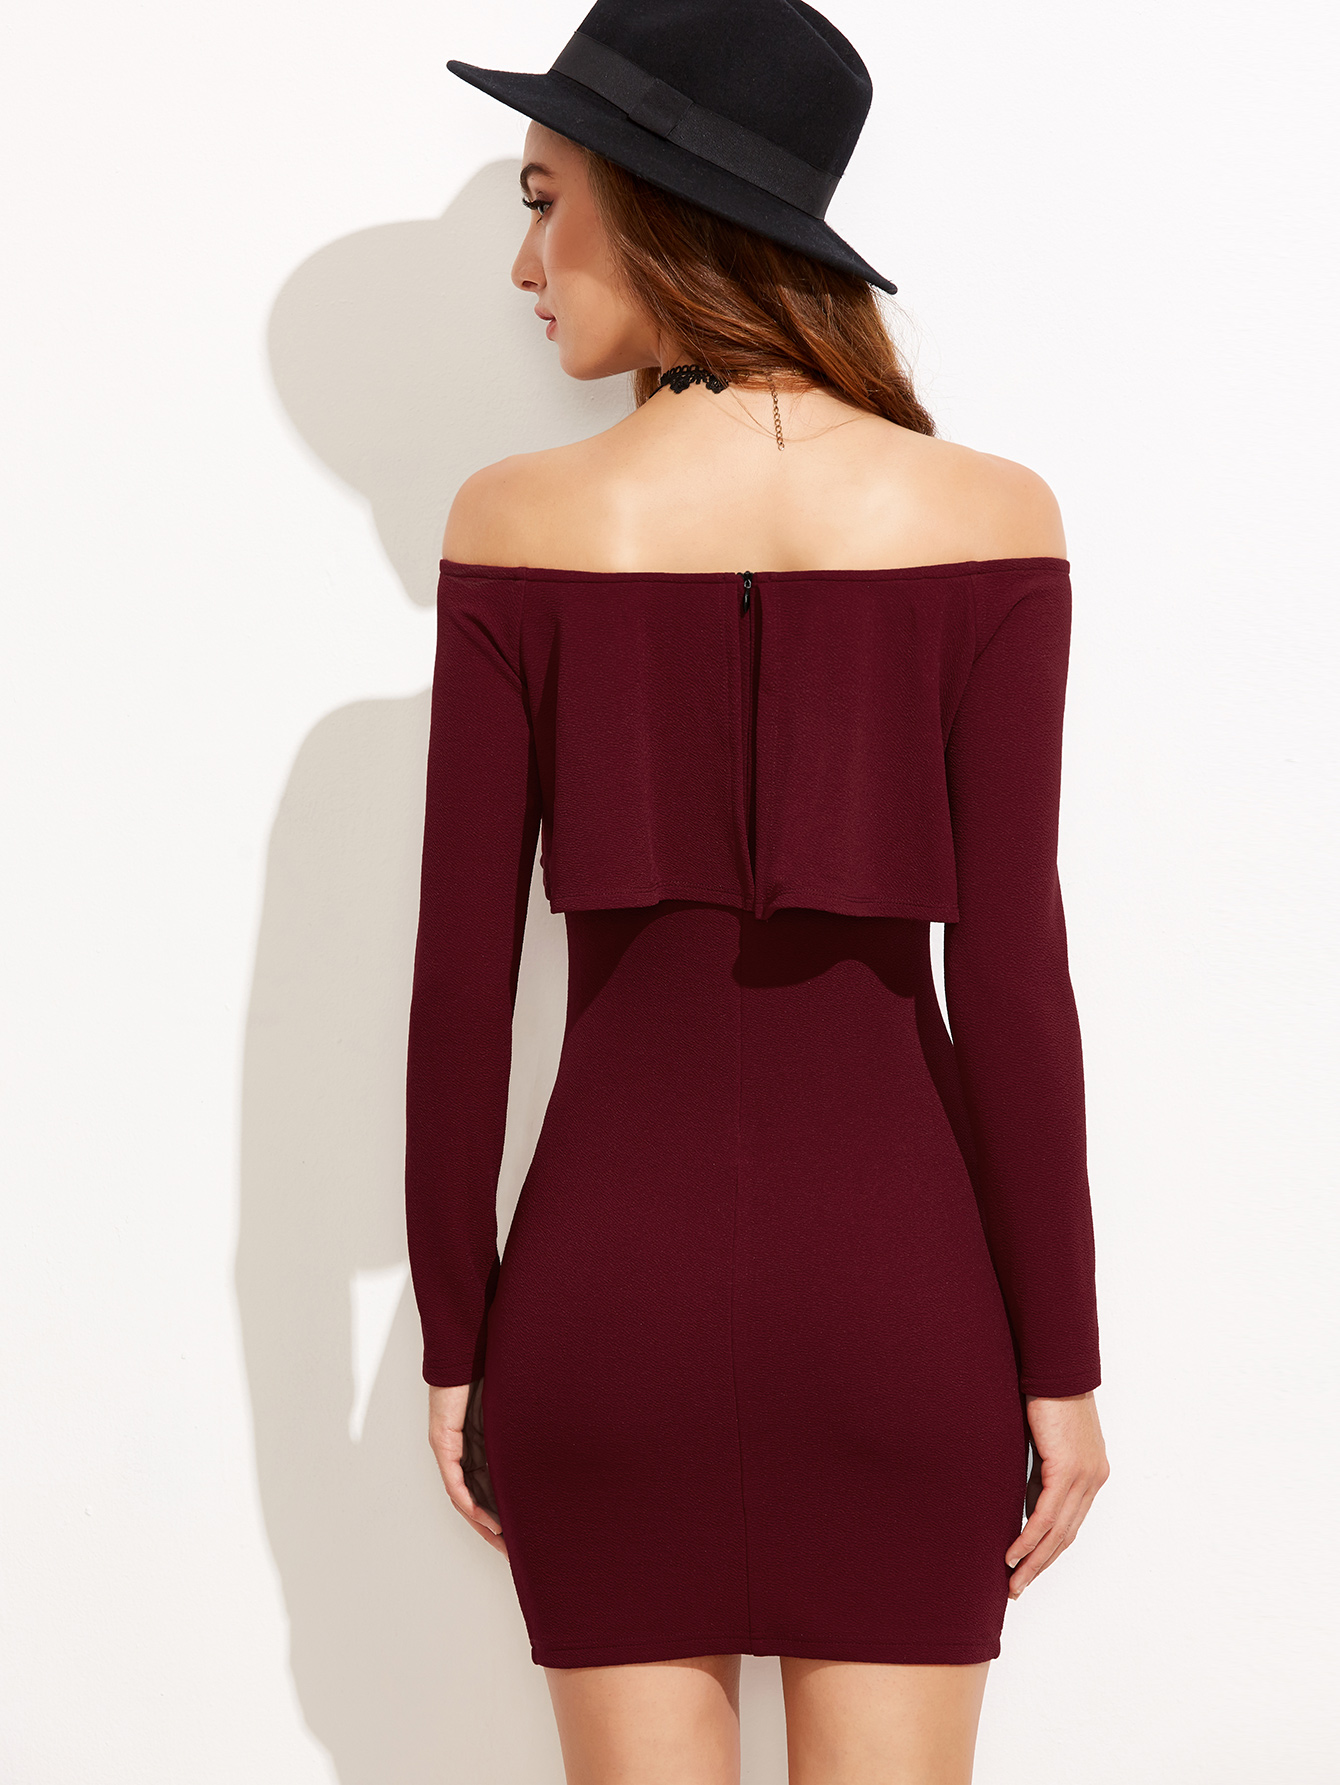 1275fbeb5133 ... Women's Burgundy Mini Dress Ruffle Off Shoulder Bodycon Outfit Long  Sleeve XS-L - Thumbnail ...